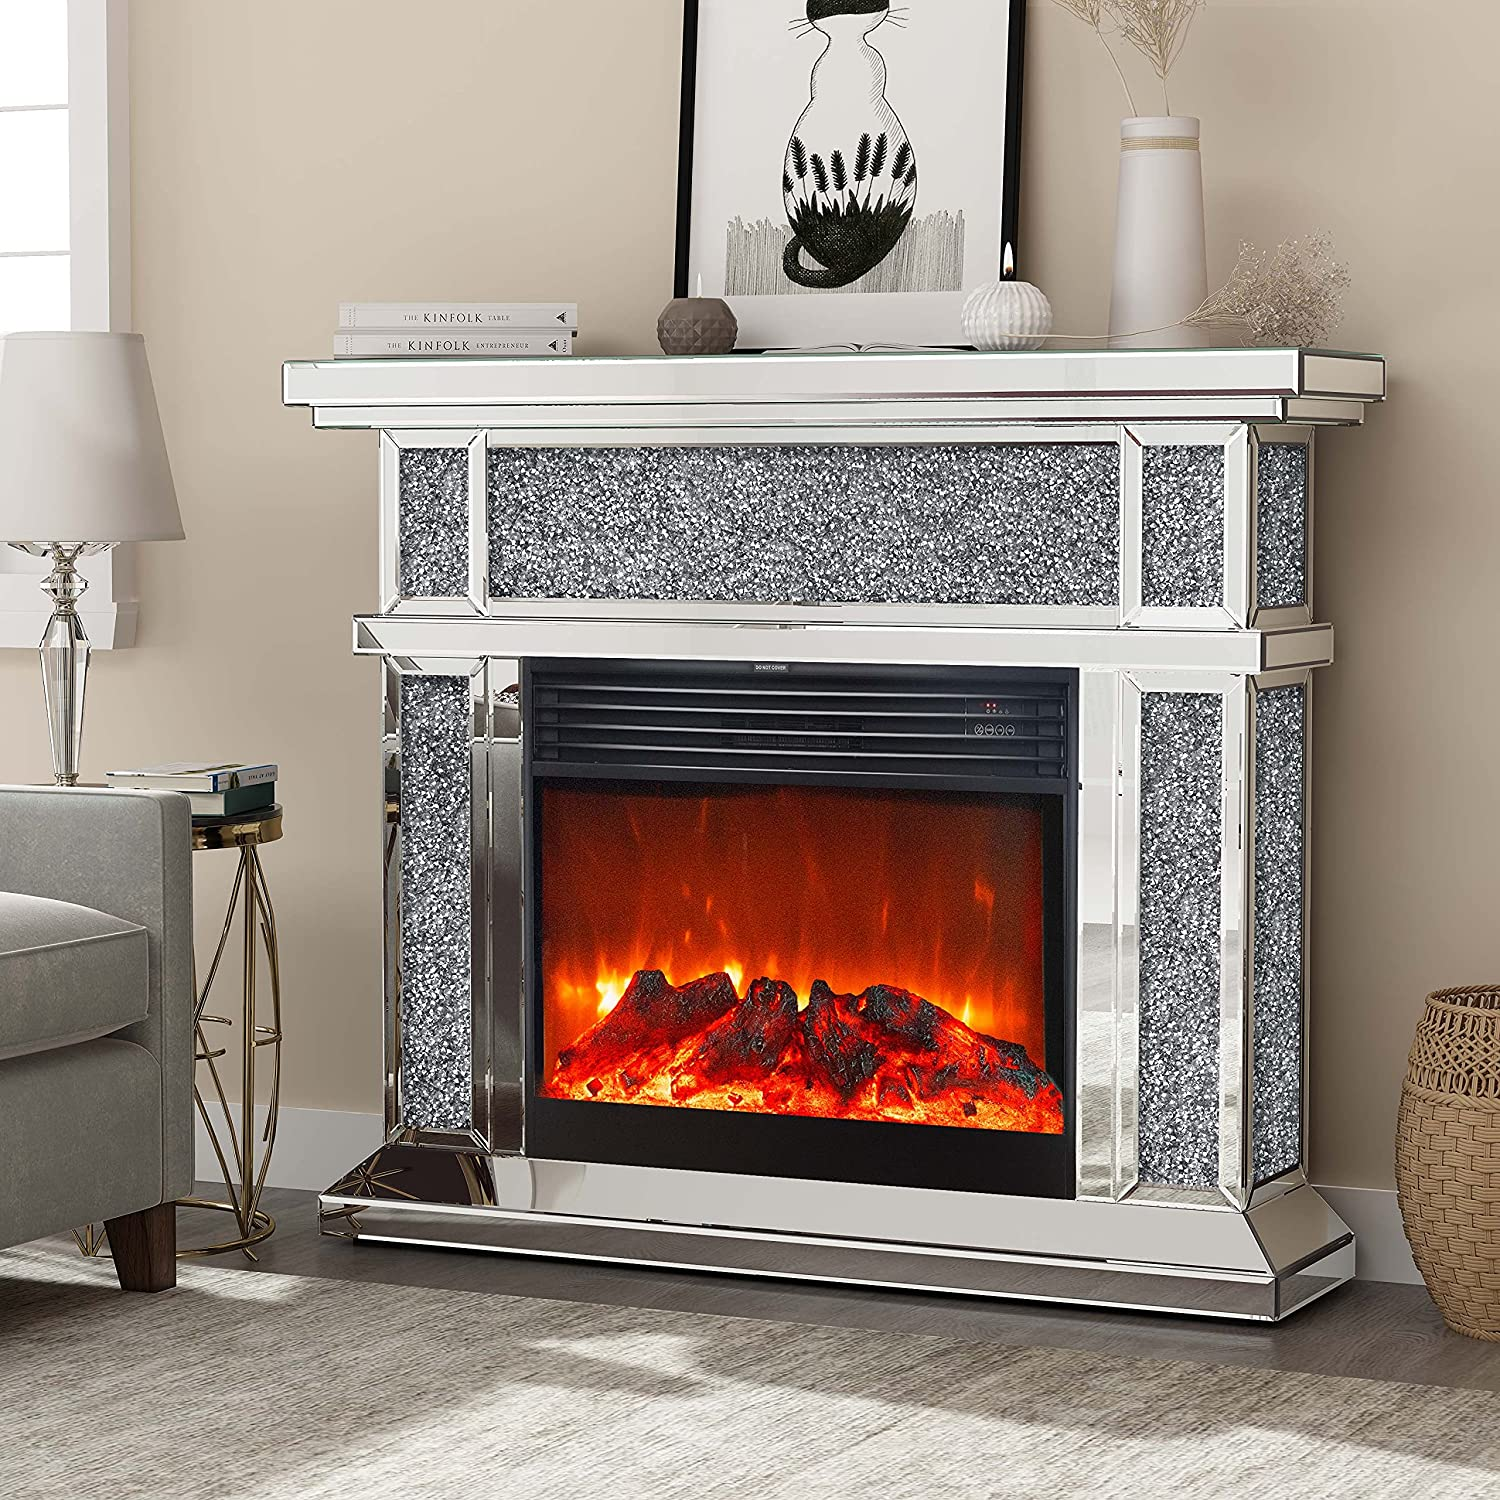 Mirrored Electric Popular brand in Max 83% OFF the world Fireplace Mantel Freestanding Heate